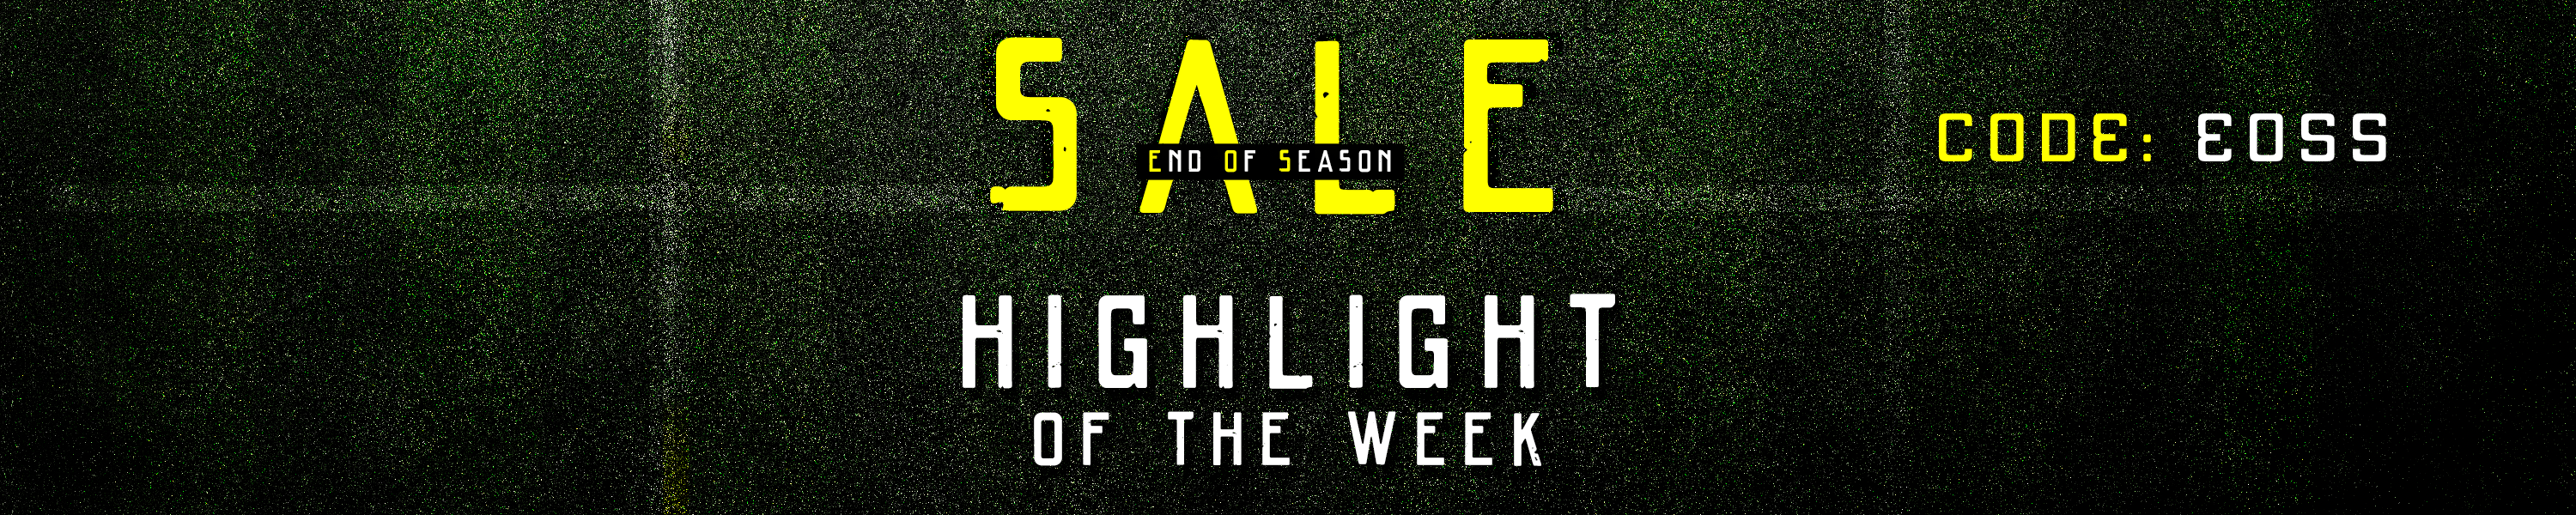 Highlight End of Season Sal e